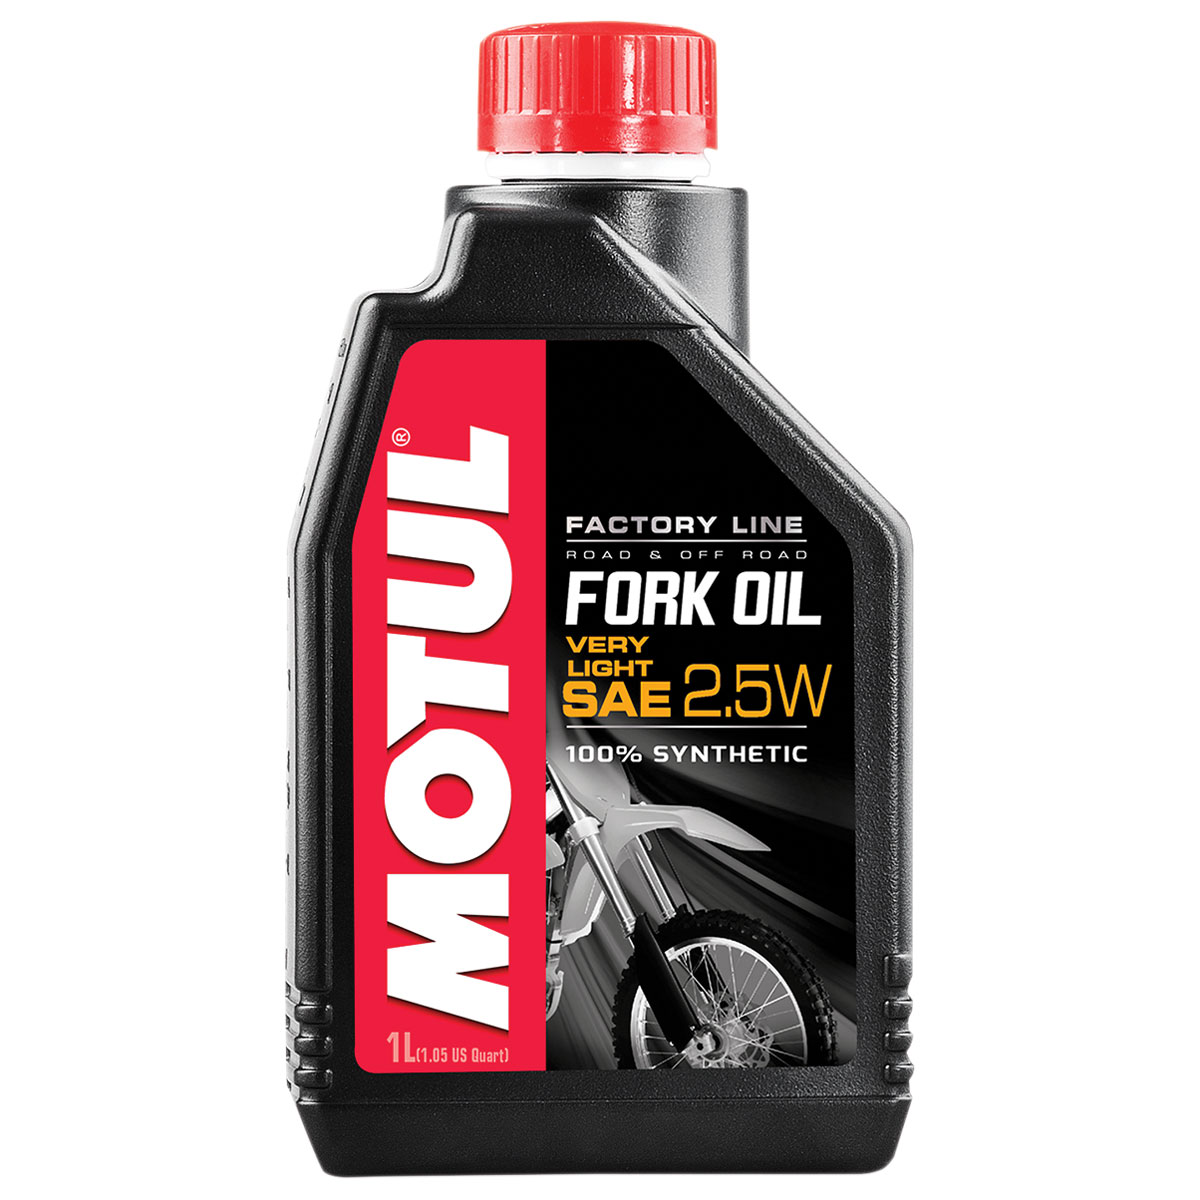 MOTUL 2.5W Factory Line Synthetic Fork Oil Liter